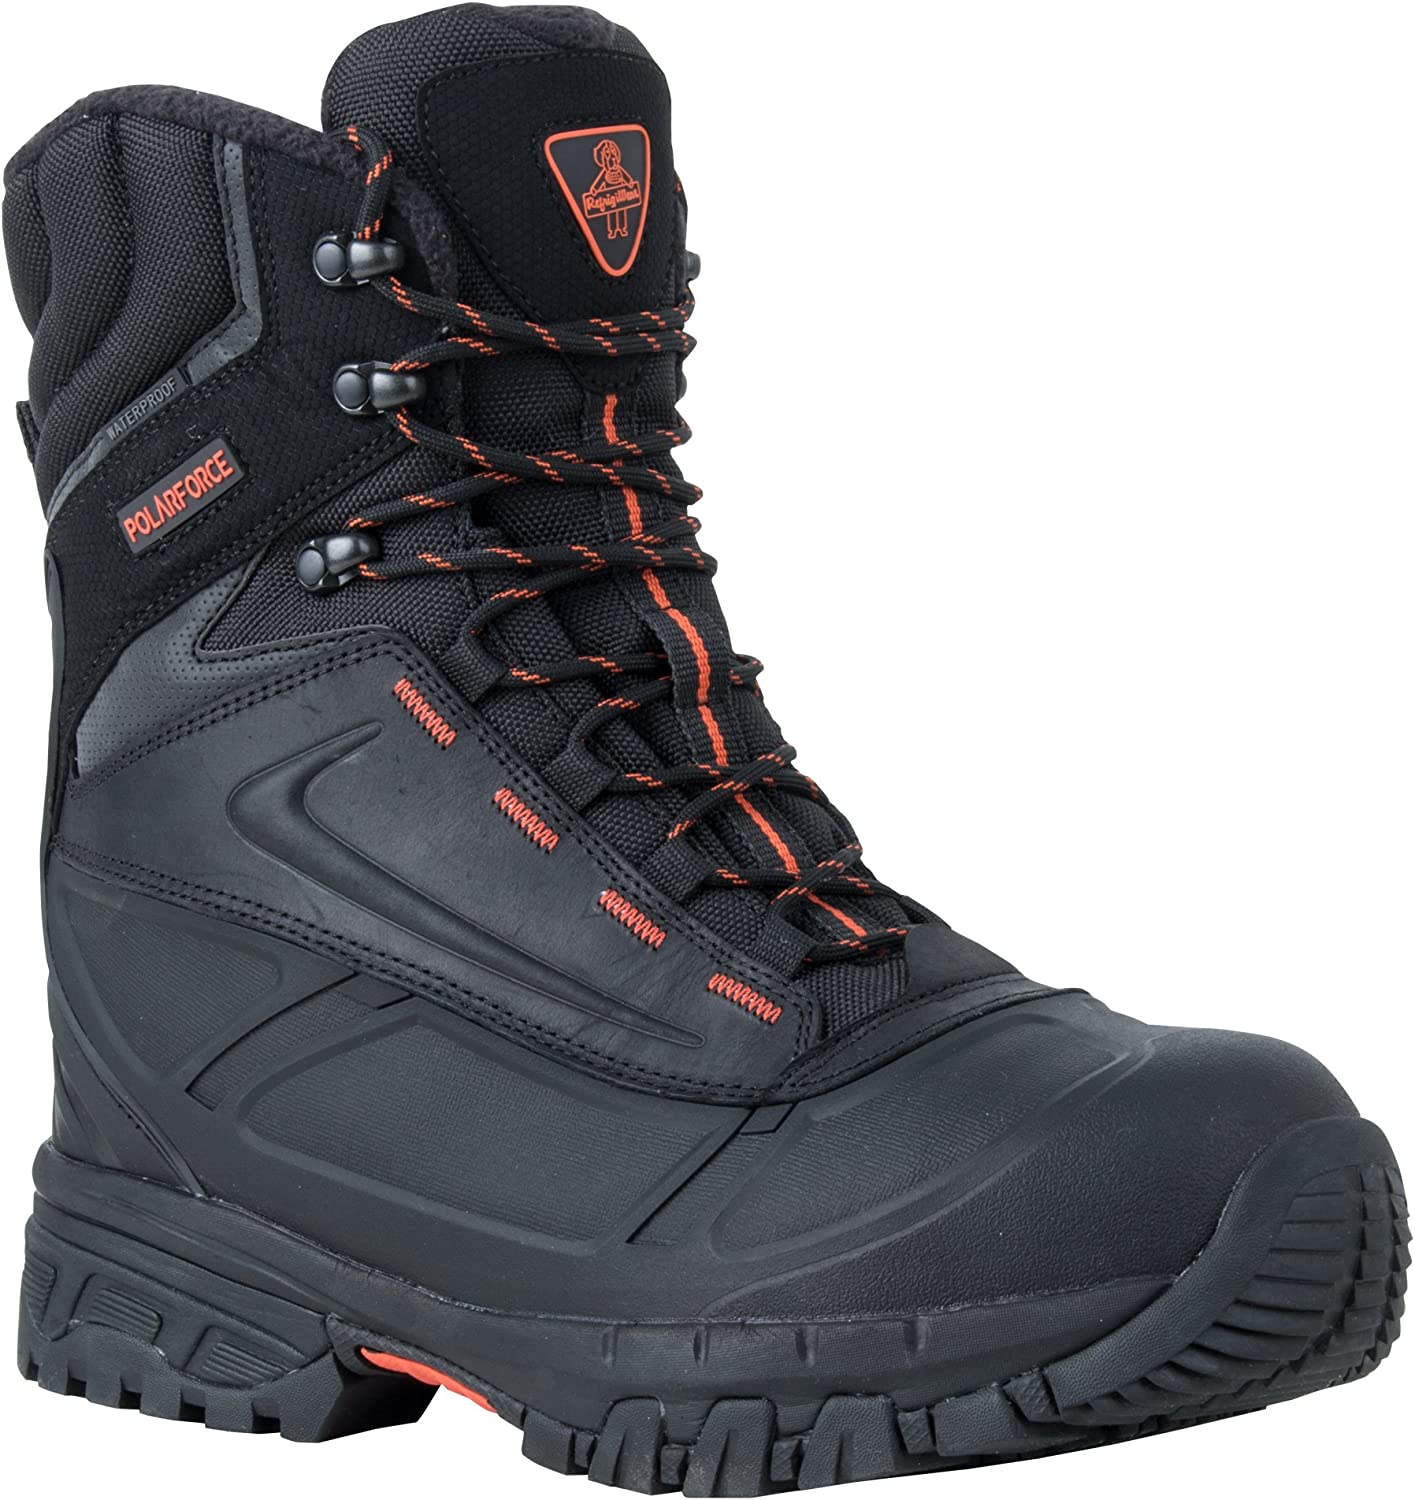 RefrigiWear Men's PolarForce Max Waterproof Insulated 8-Inch Leather Work Boots